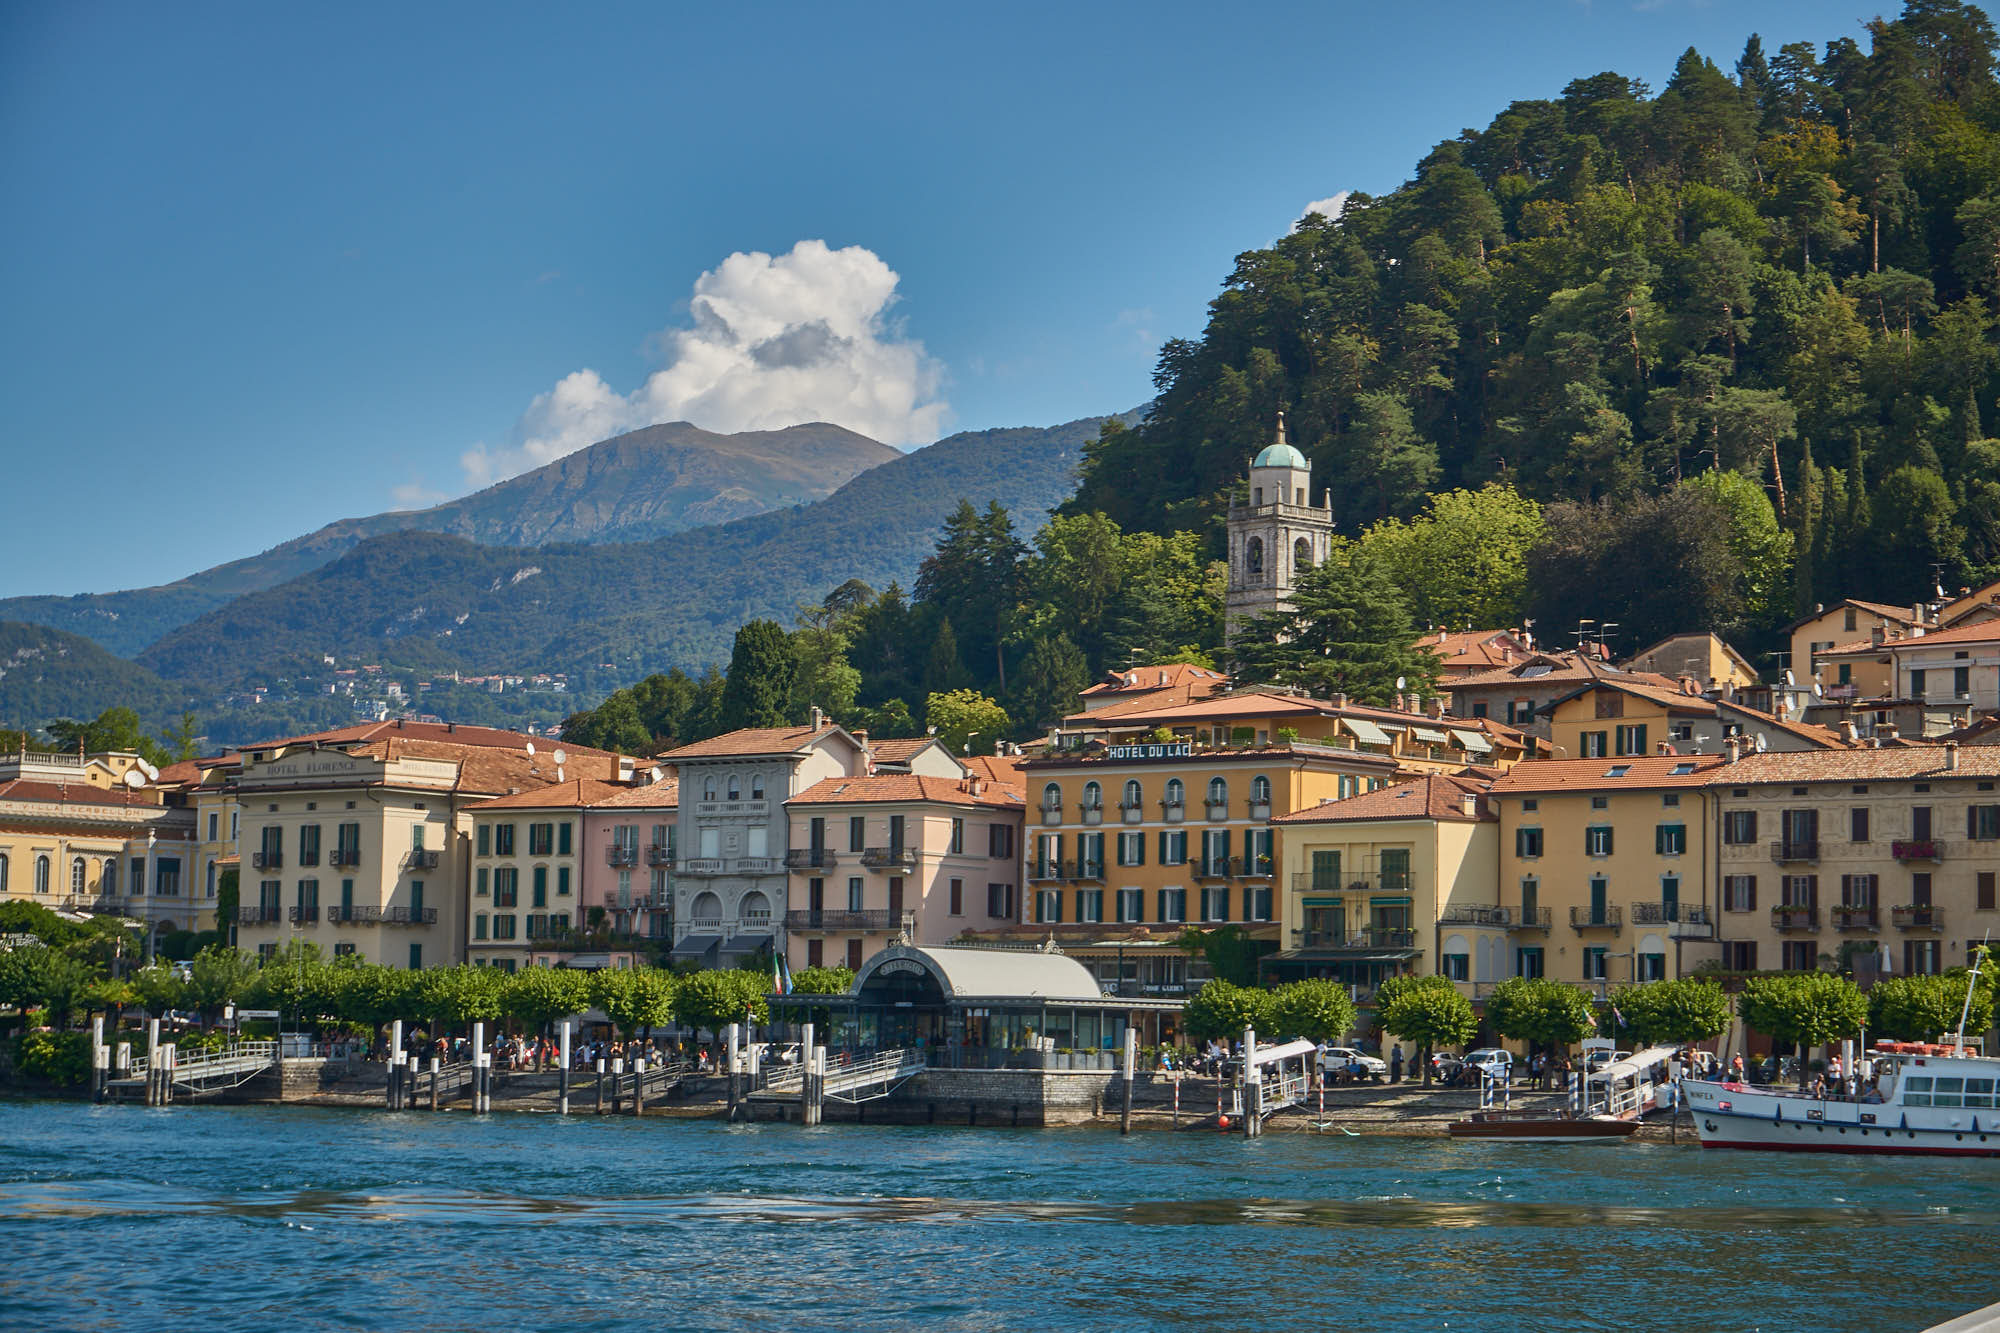 Lake Como One day cruise to Bellagio and Varenna